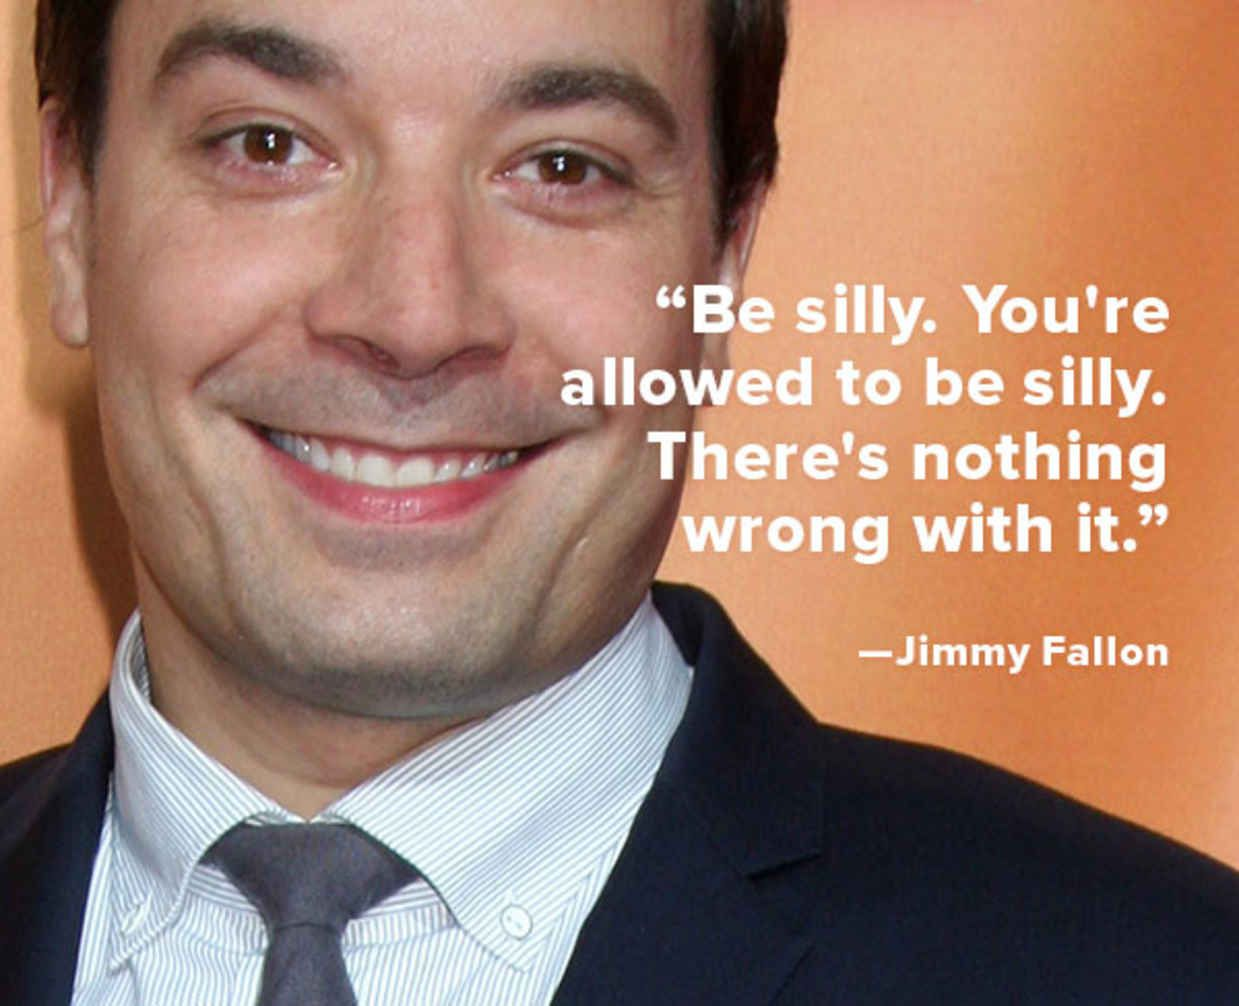 be silly. you're allowed to be silly. there's nothing wrong with it